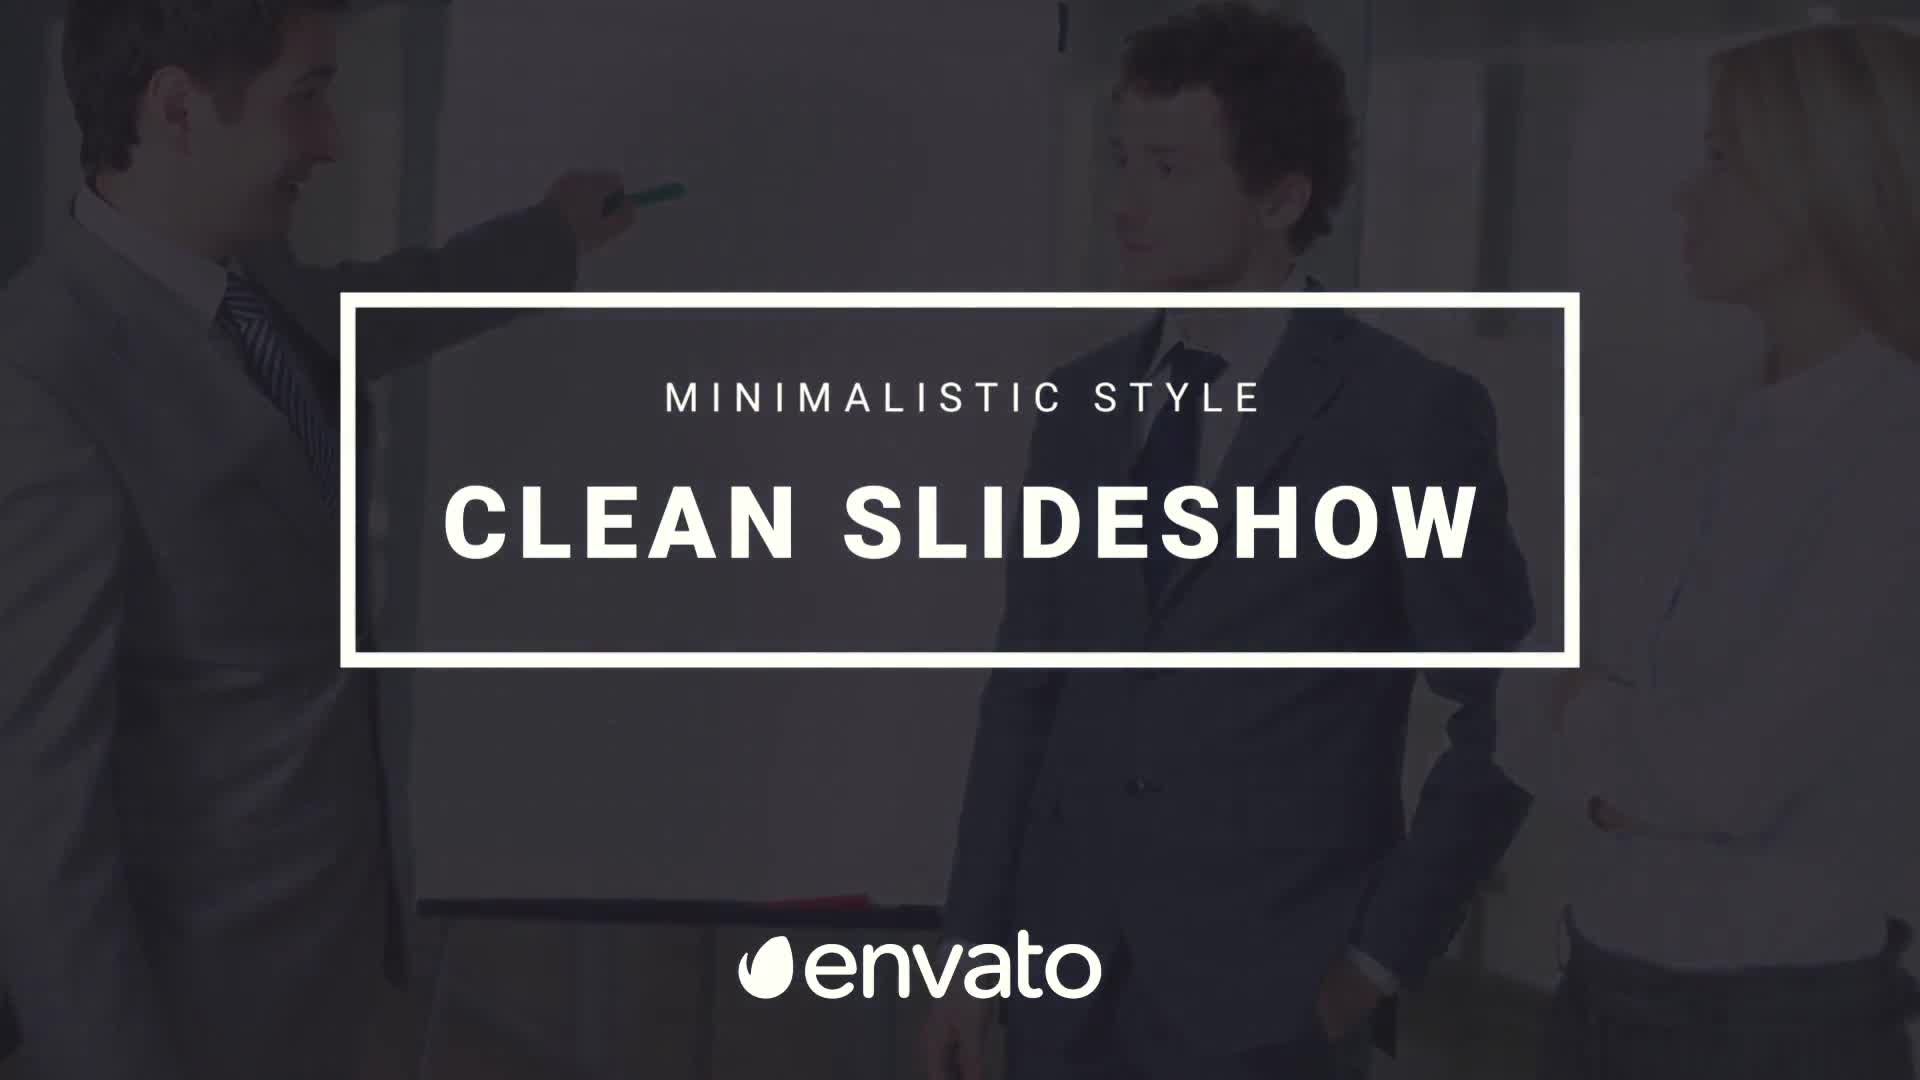 Clean Corporate Slides Videohive 25491904 Premiere Pro Image 1